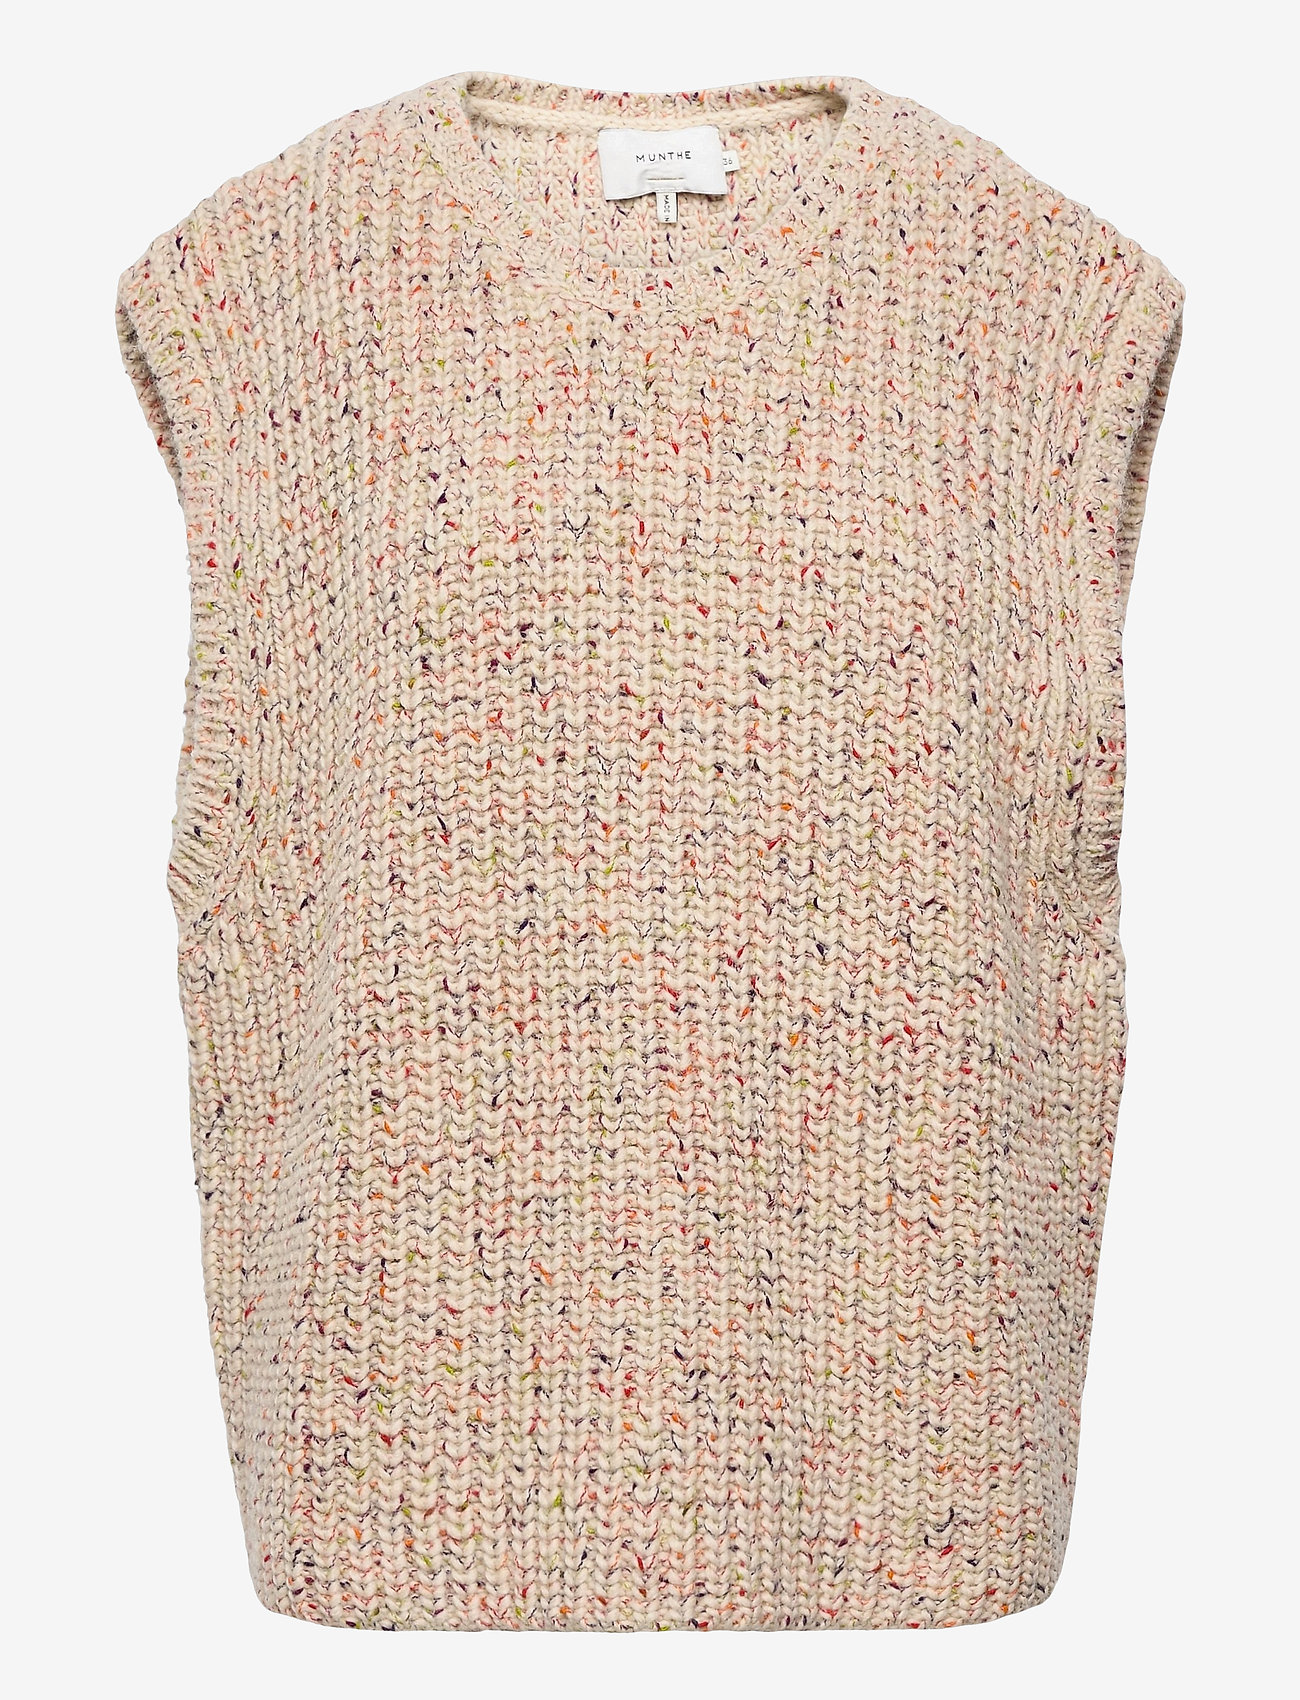 Munthe - TOUCH - knitted vests - nature - 0